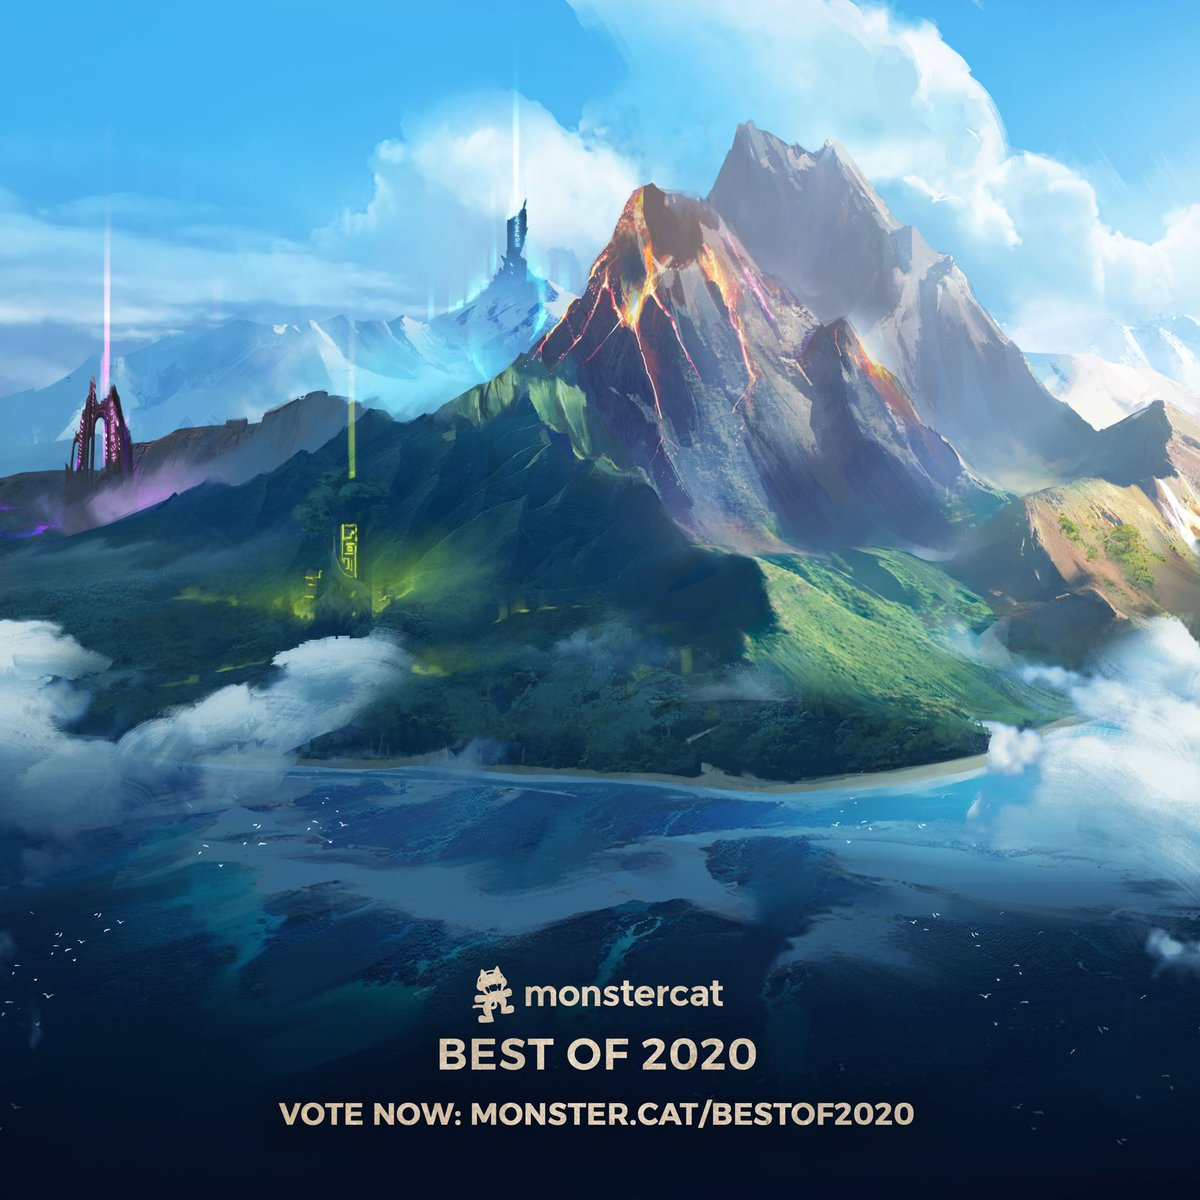 Replying to @SlushiiMusic: vote All I Need for @Monstercat #McatBestof2020 🥳